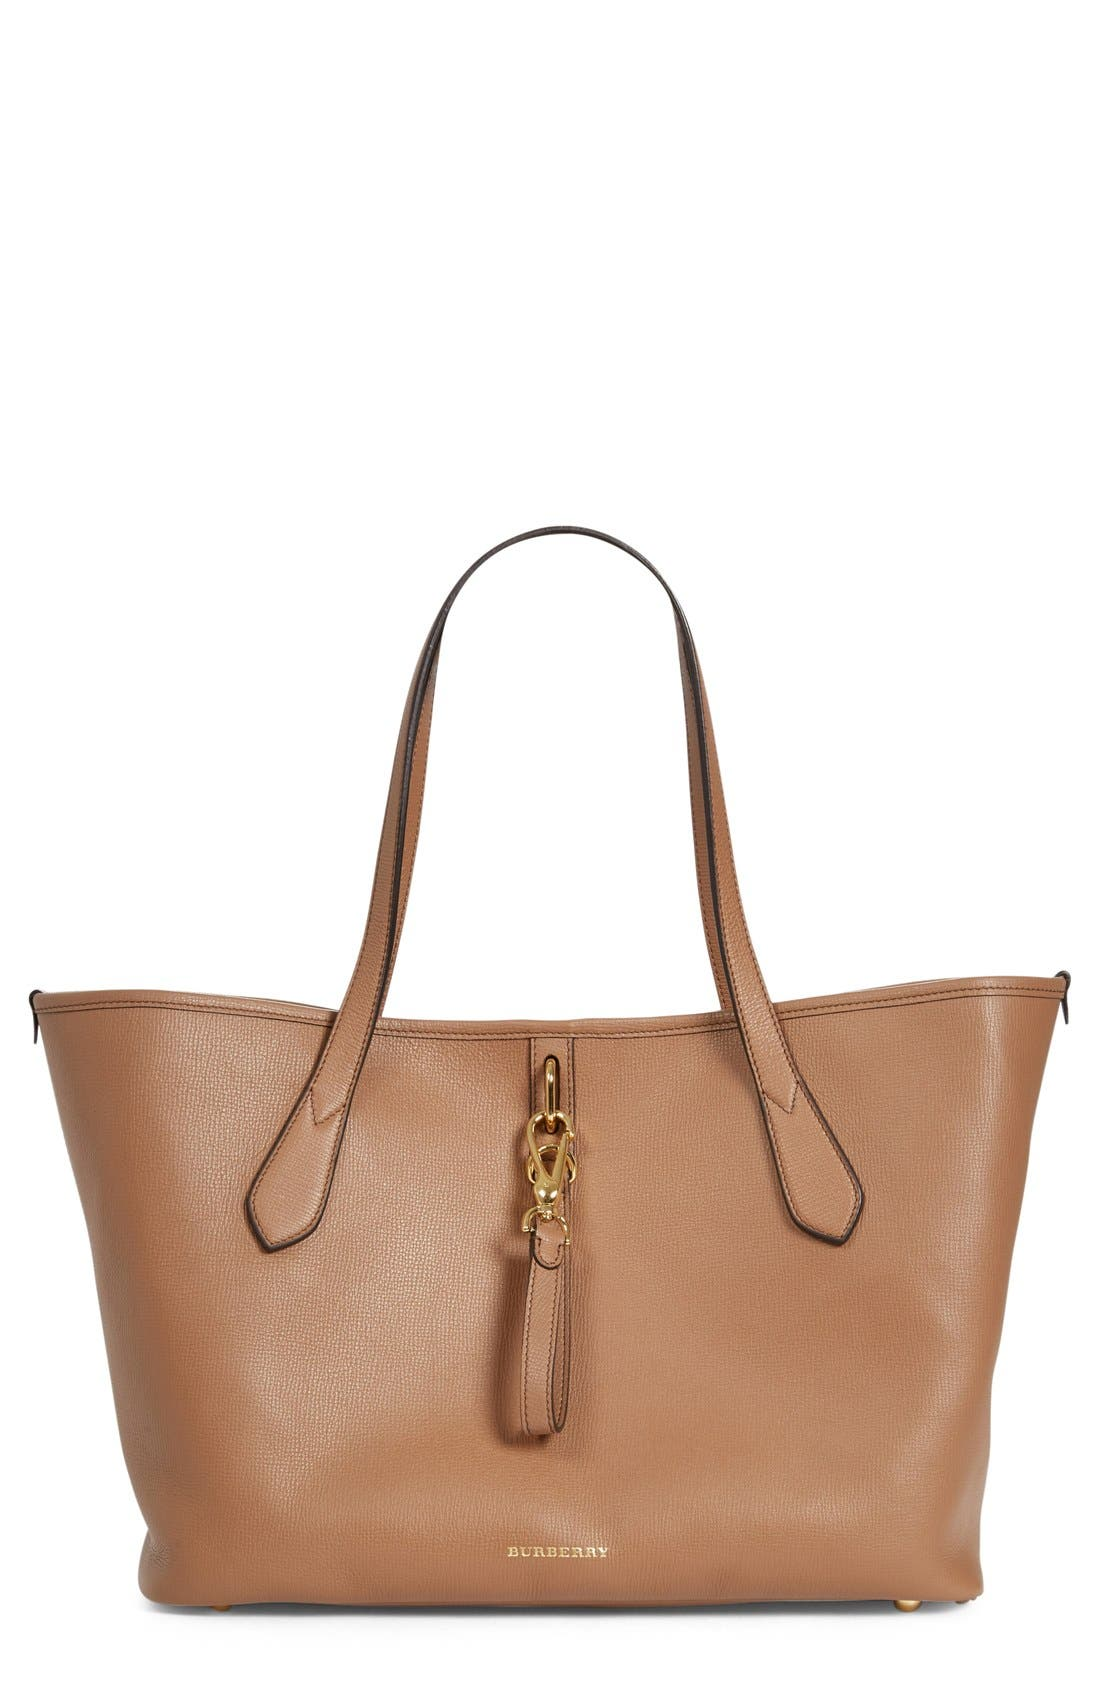 BURBERRY Medium Honeybrook Leather Tote